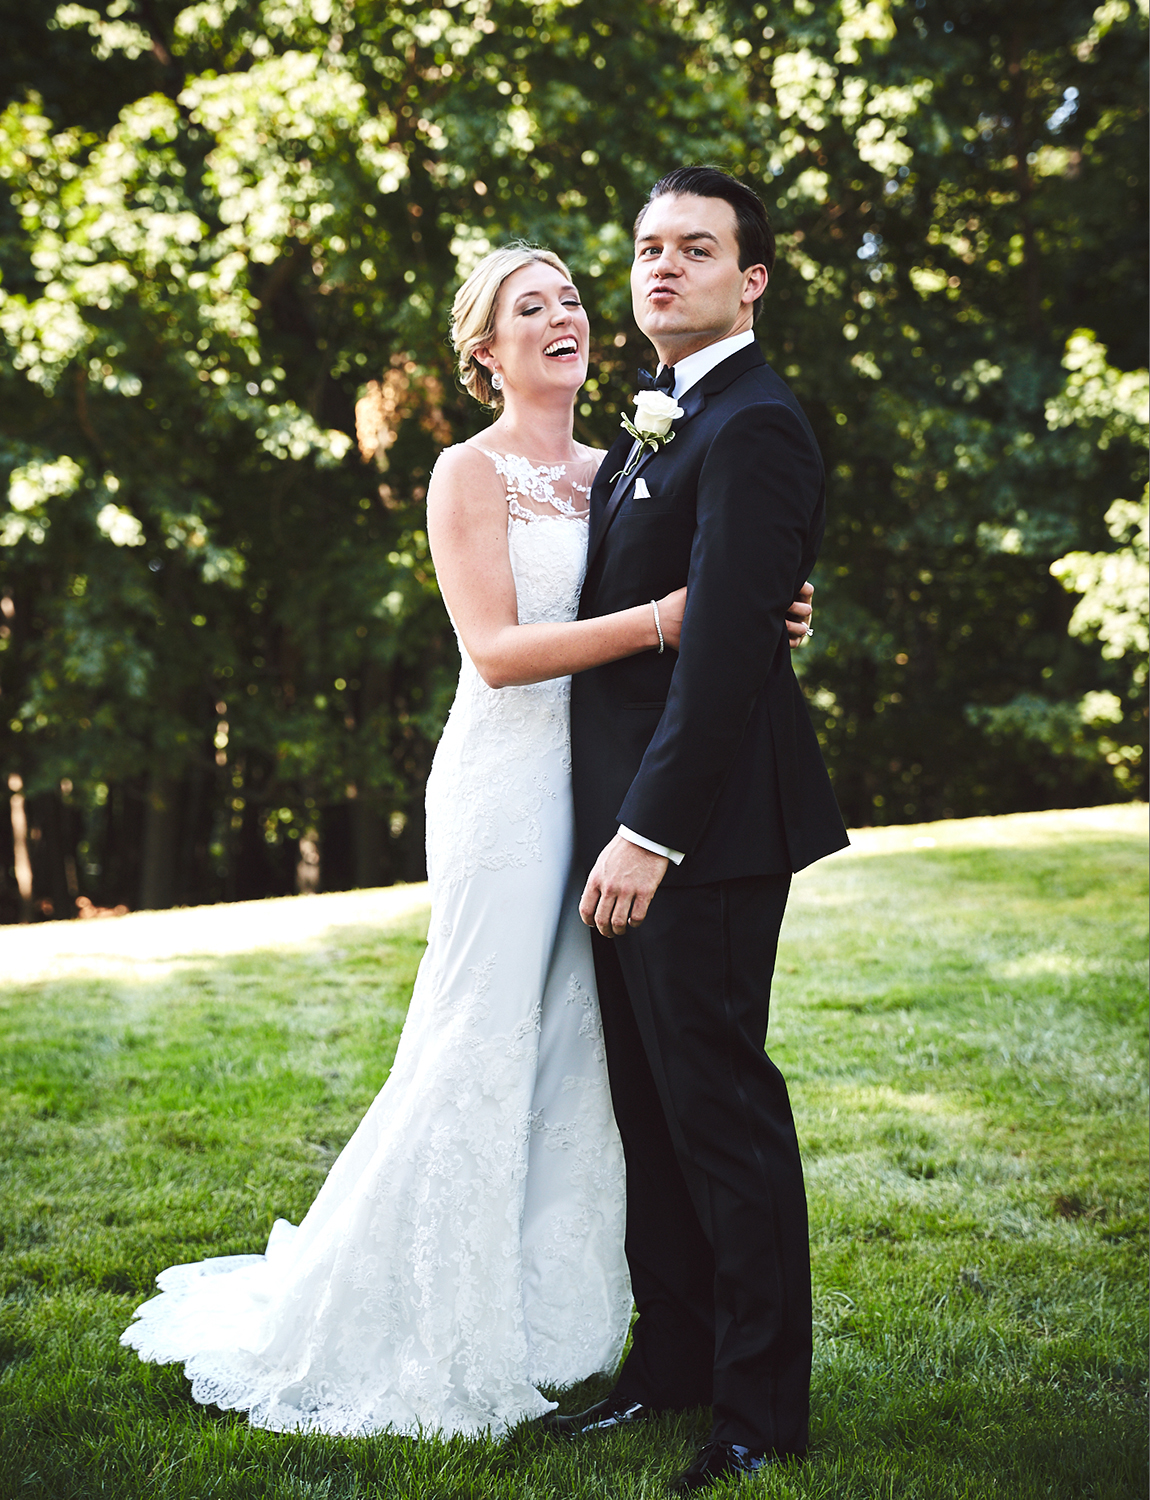 170804_TappanHillMansionWeddingPhotography_NYWeddingPhotographerBy_BriJohnsonWeddings_0049.jpg